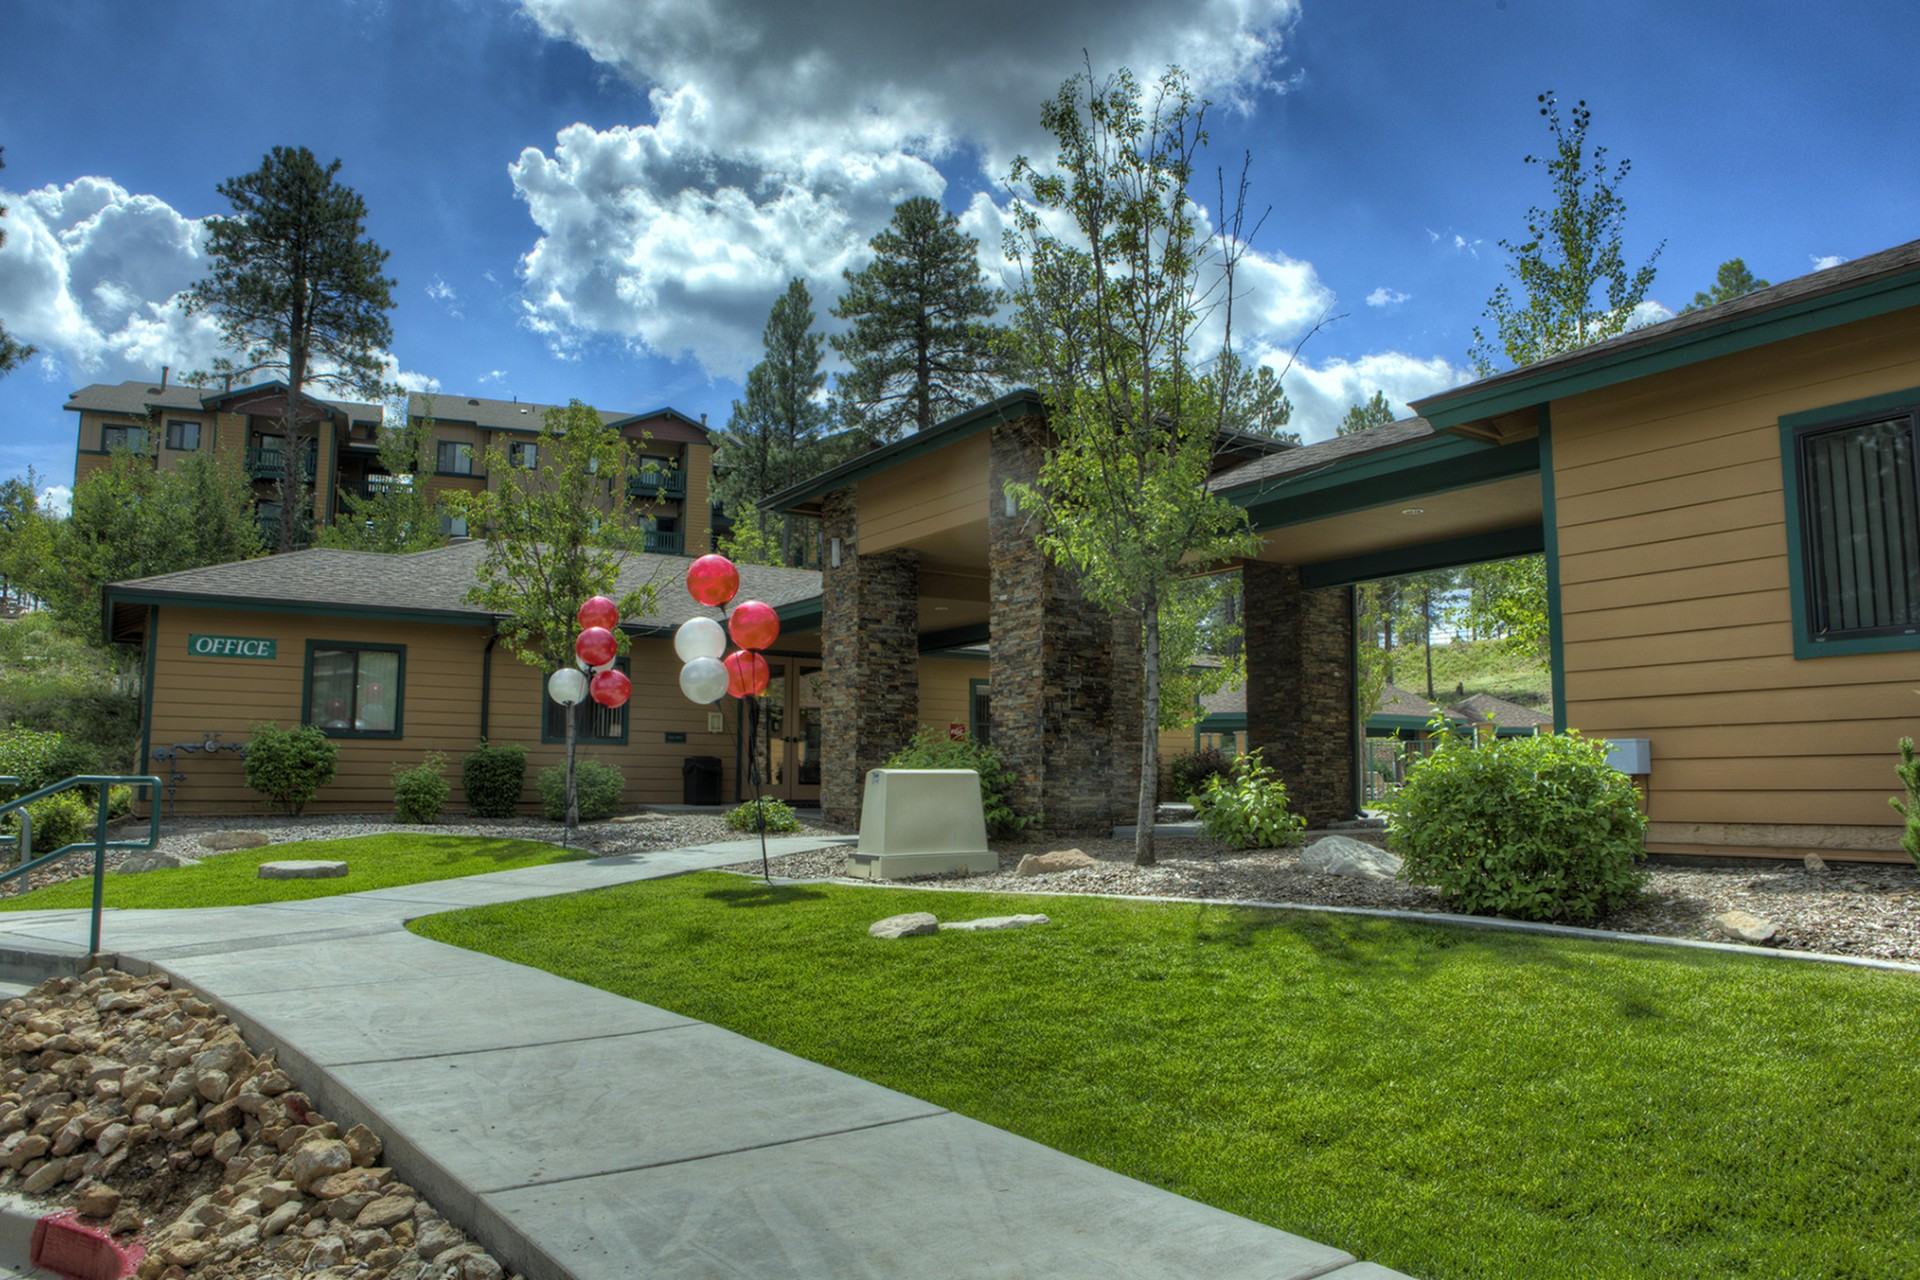 The Ridge at Clear Creek Apartments Flagstaff, AZ exterior and landscaping